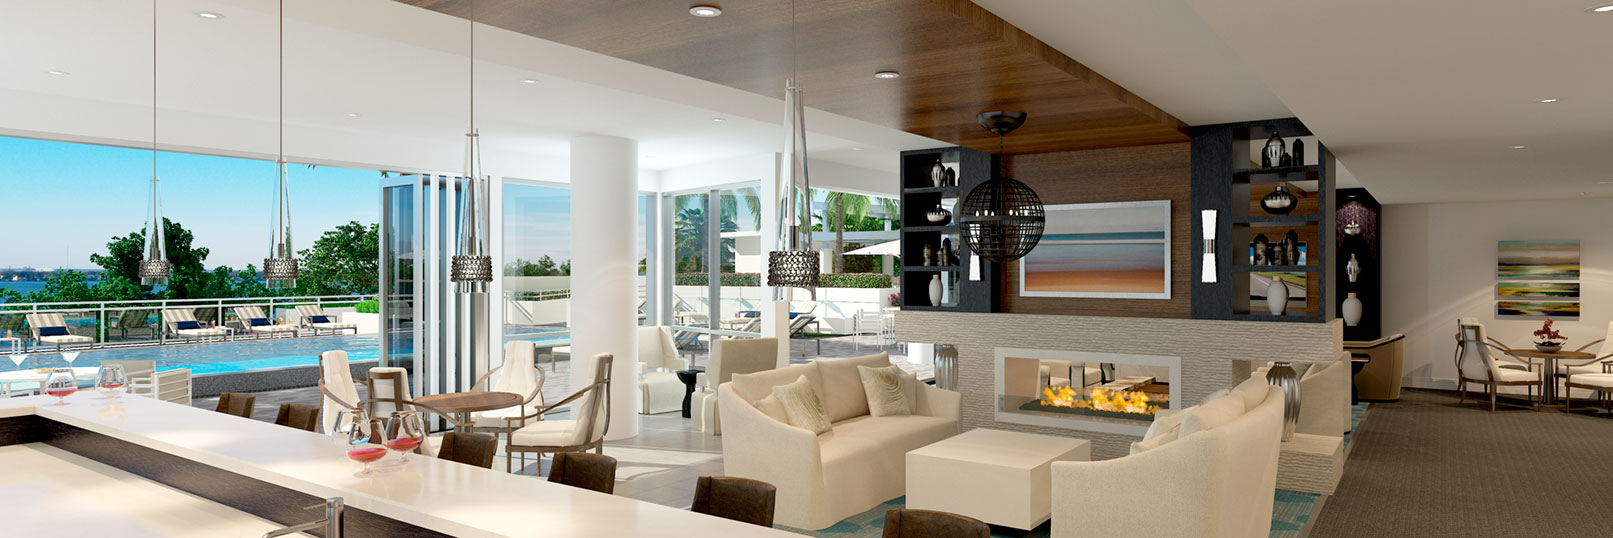 luxury condo interior photo